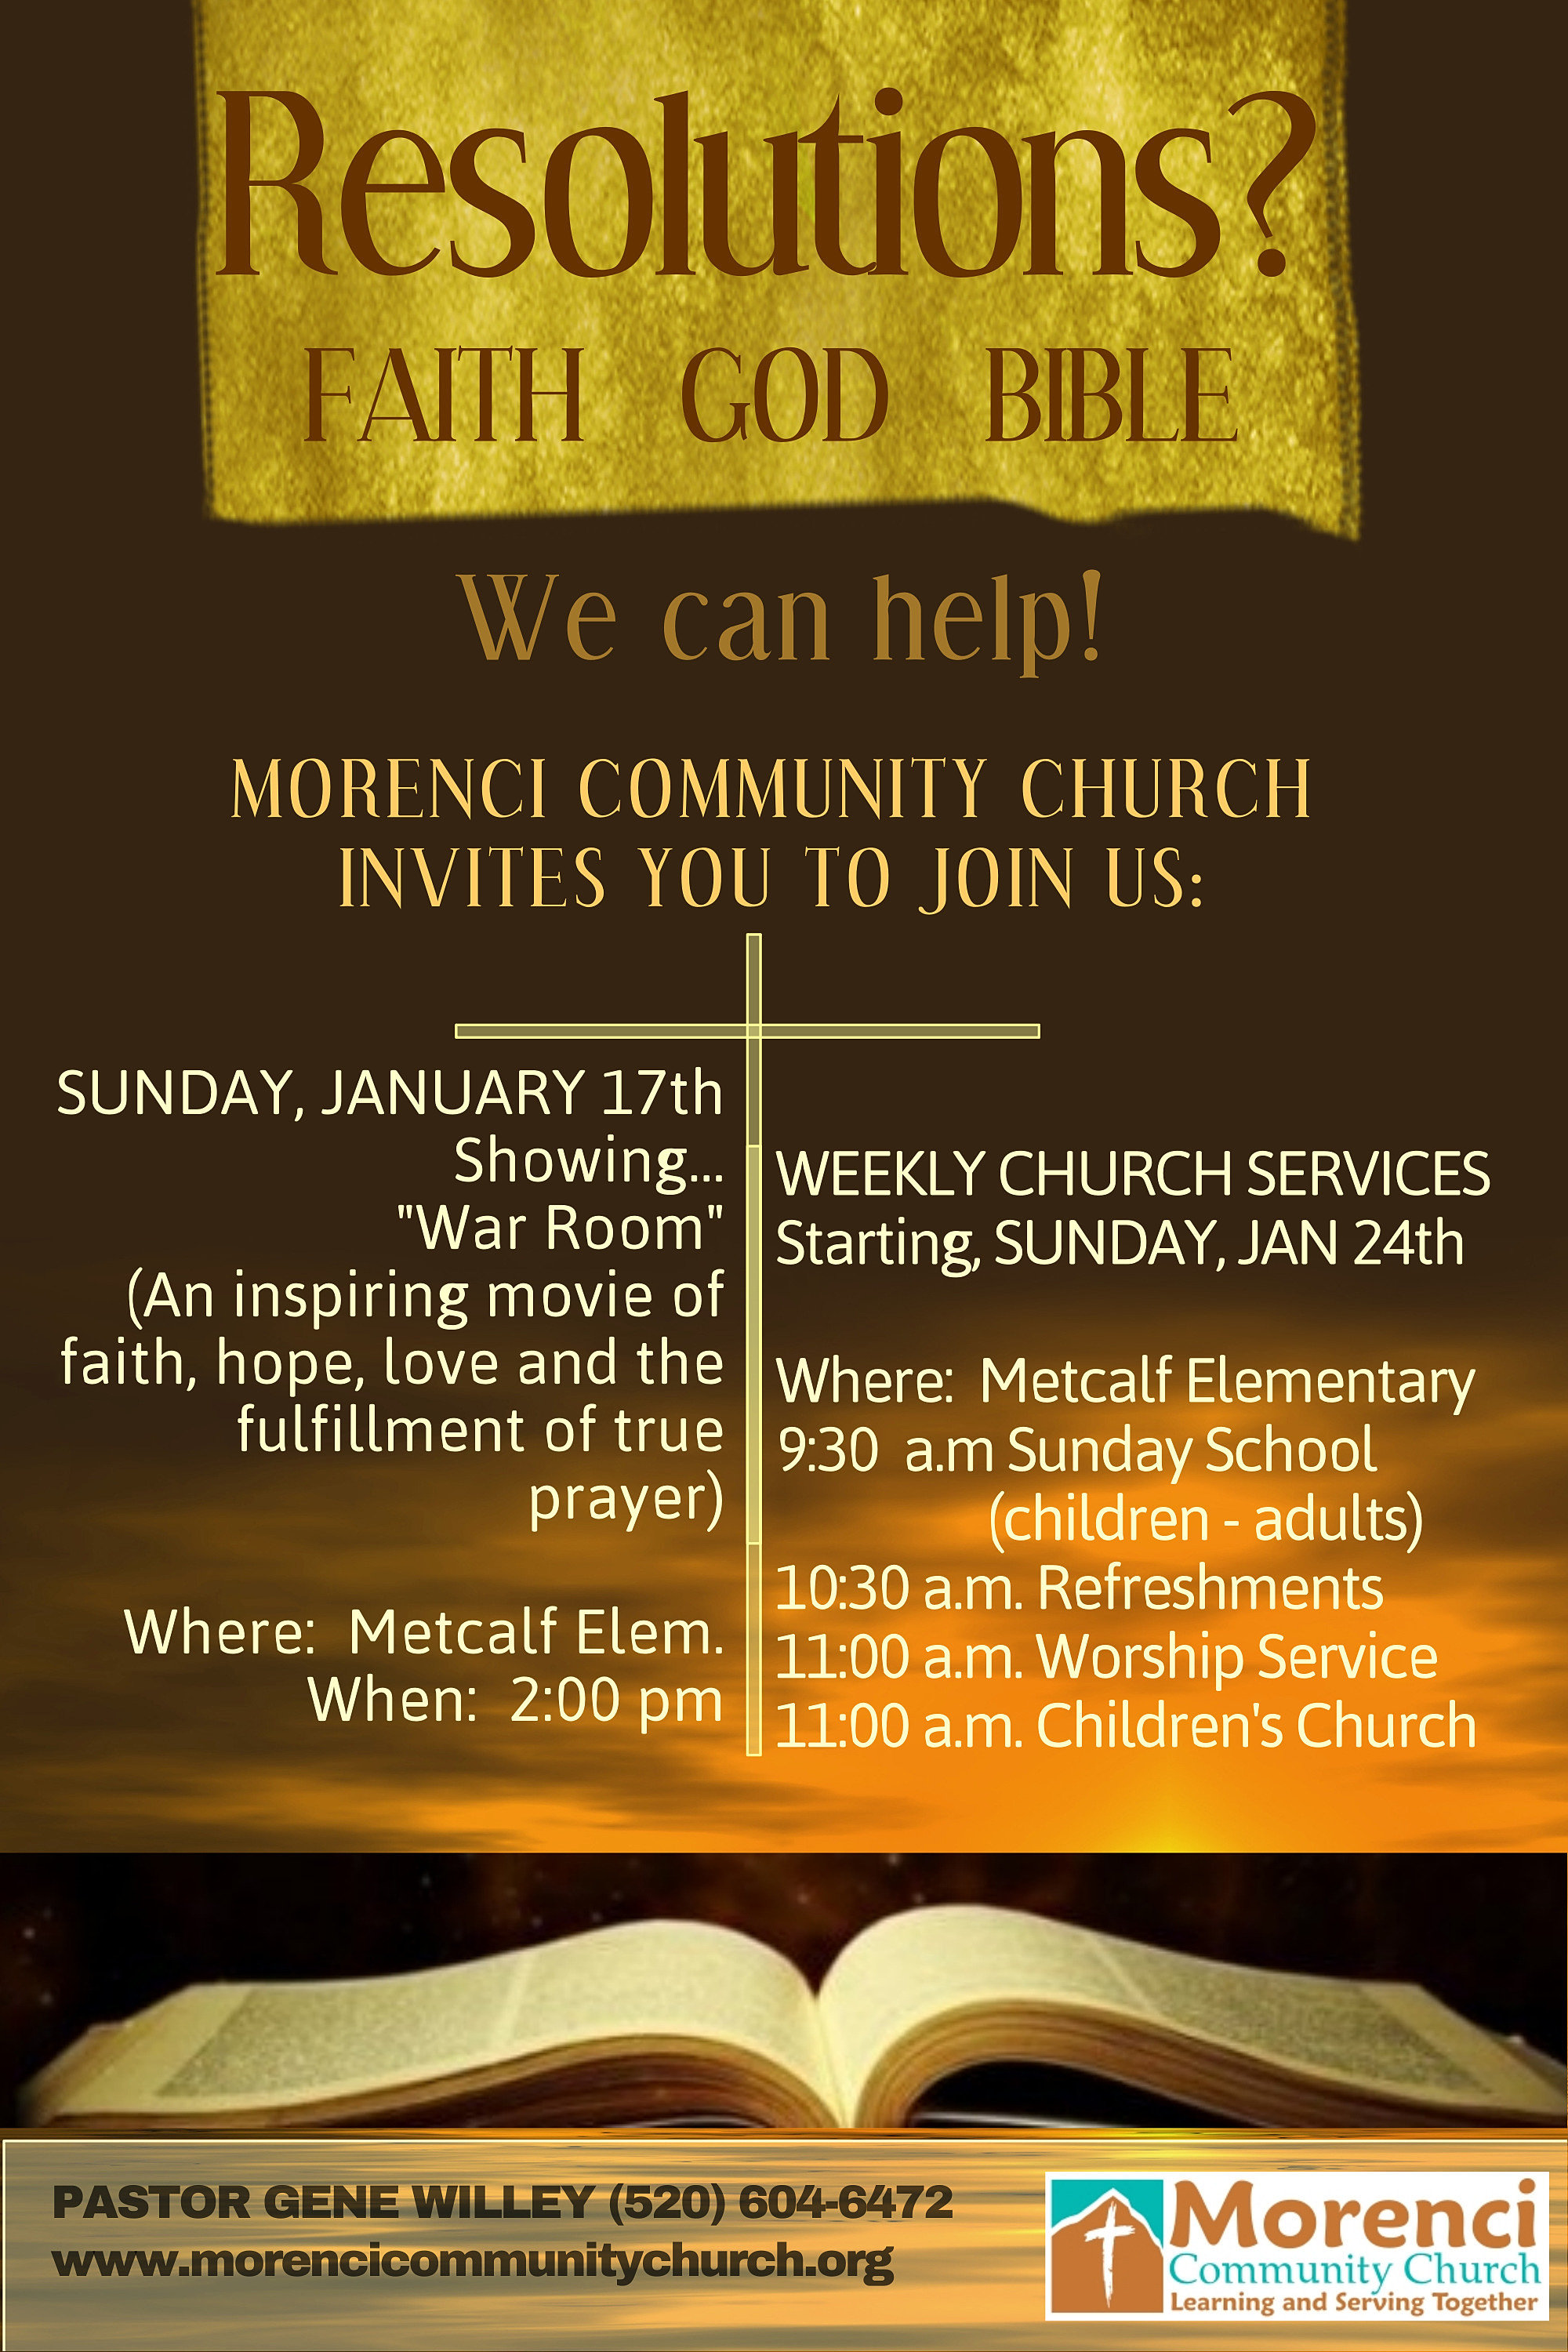 morenci community church flyer morenci community church flyer